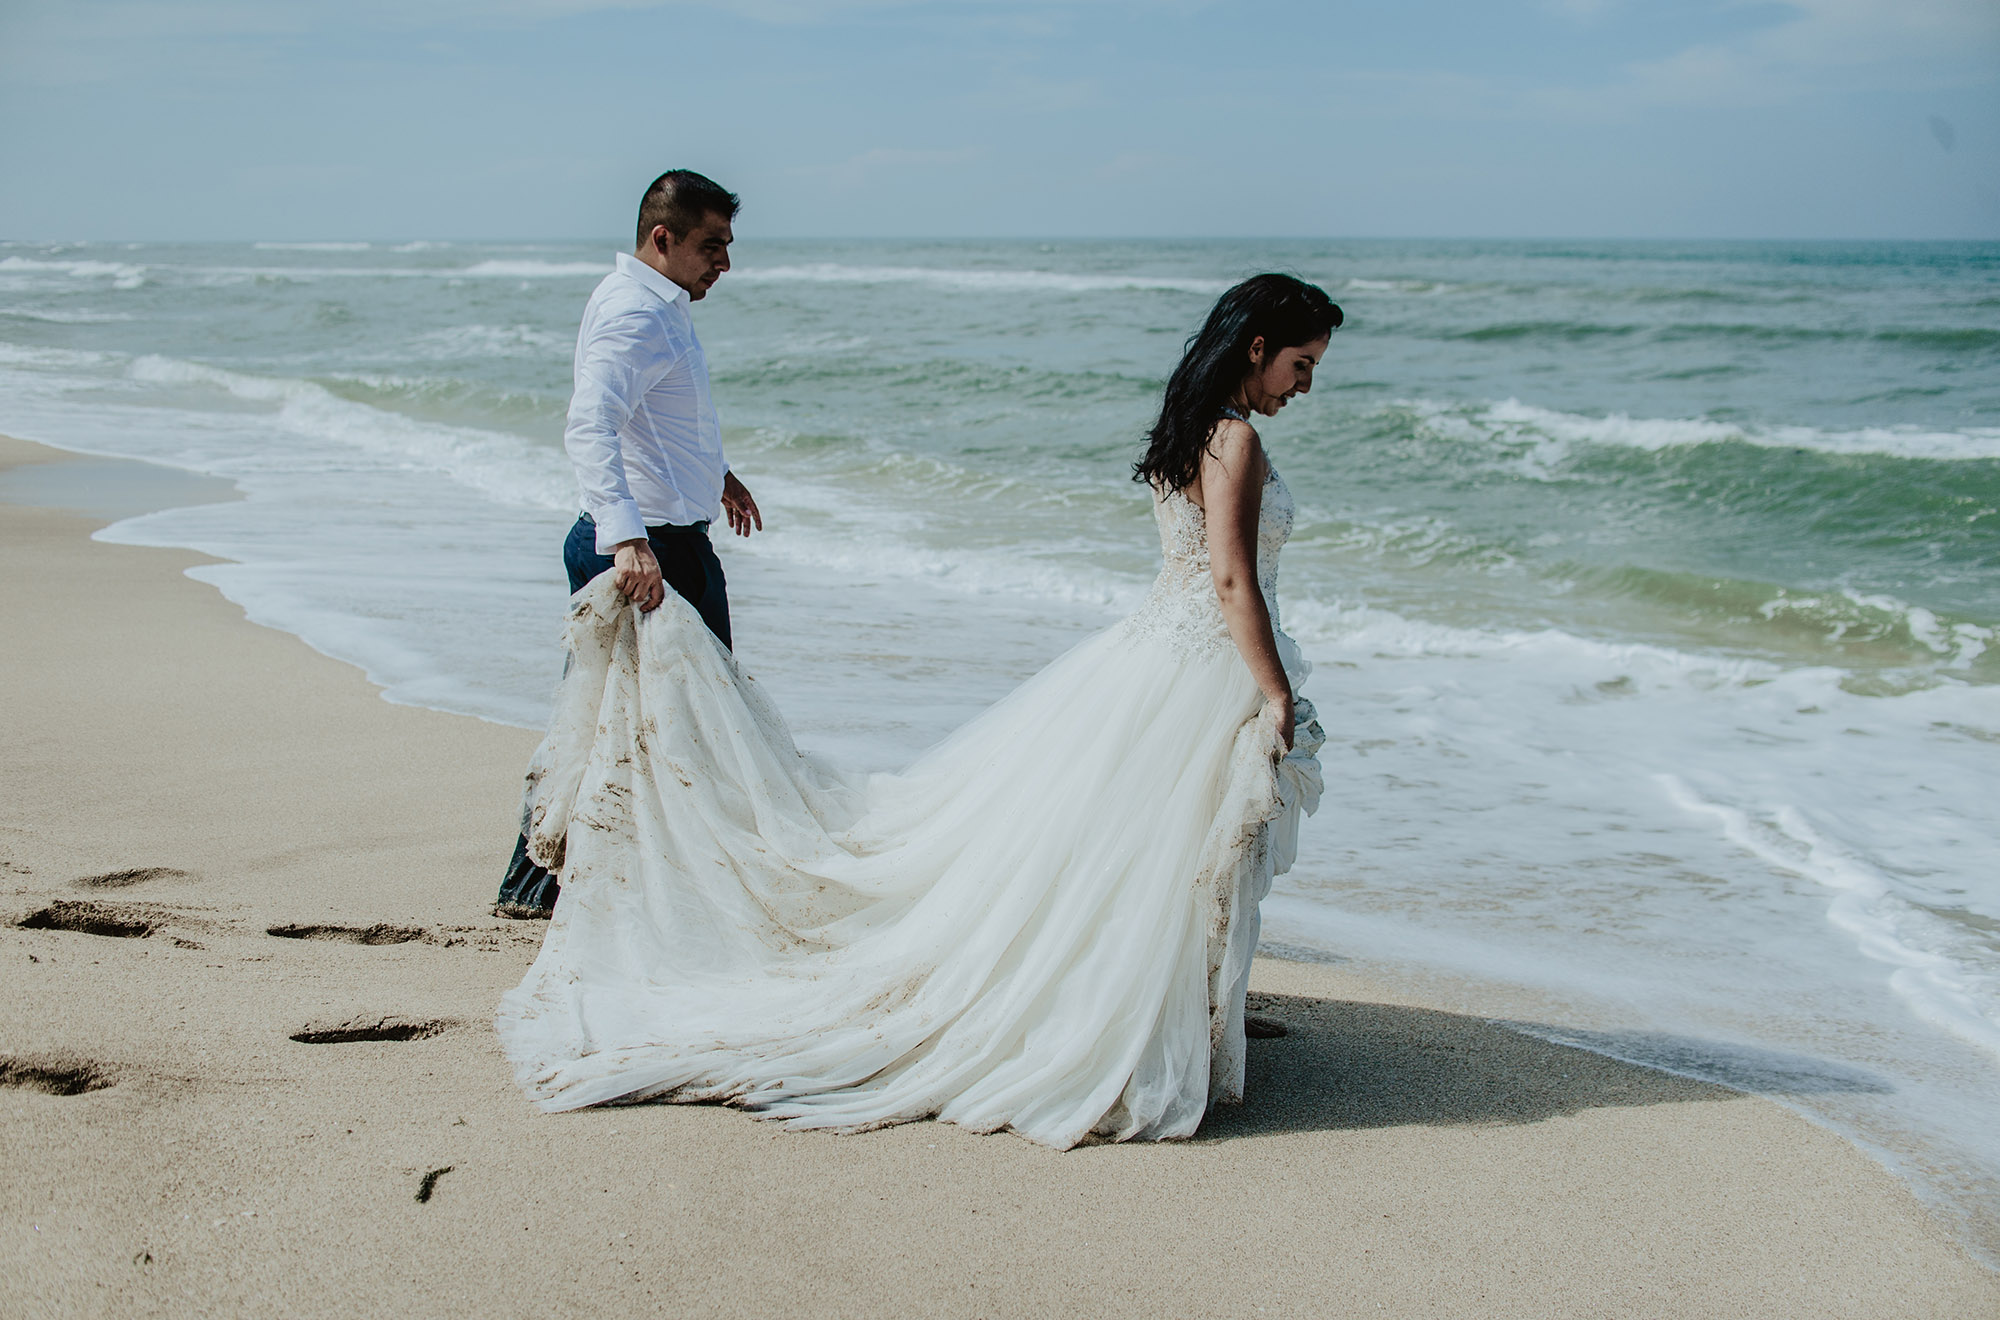 bibi y aldo trash the dress174.jpg